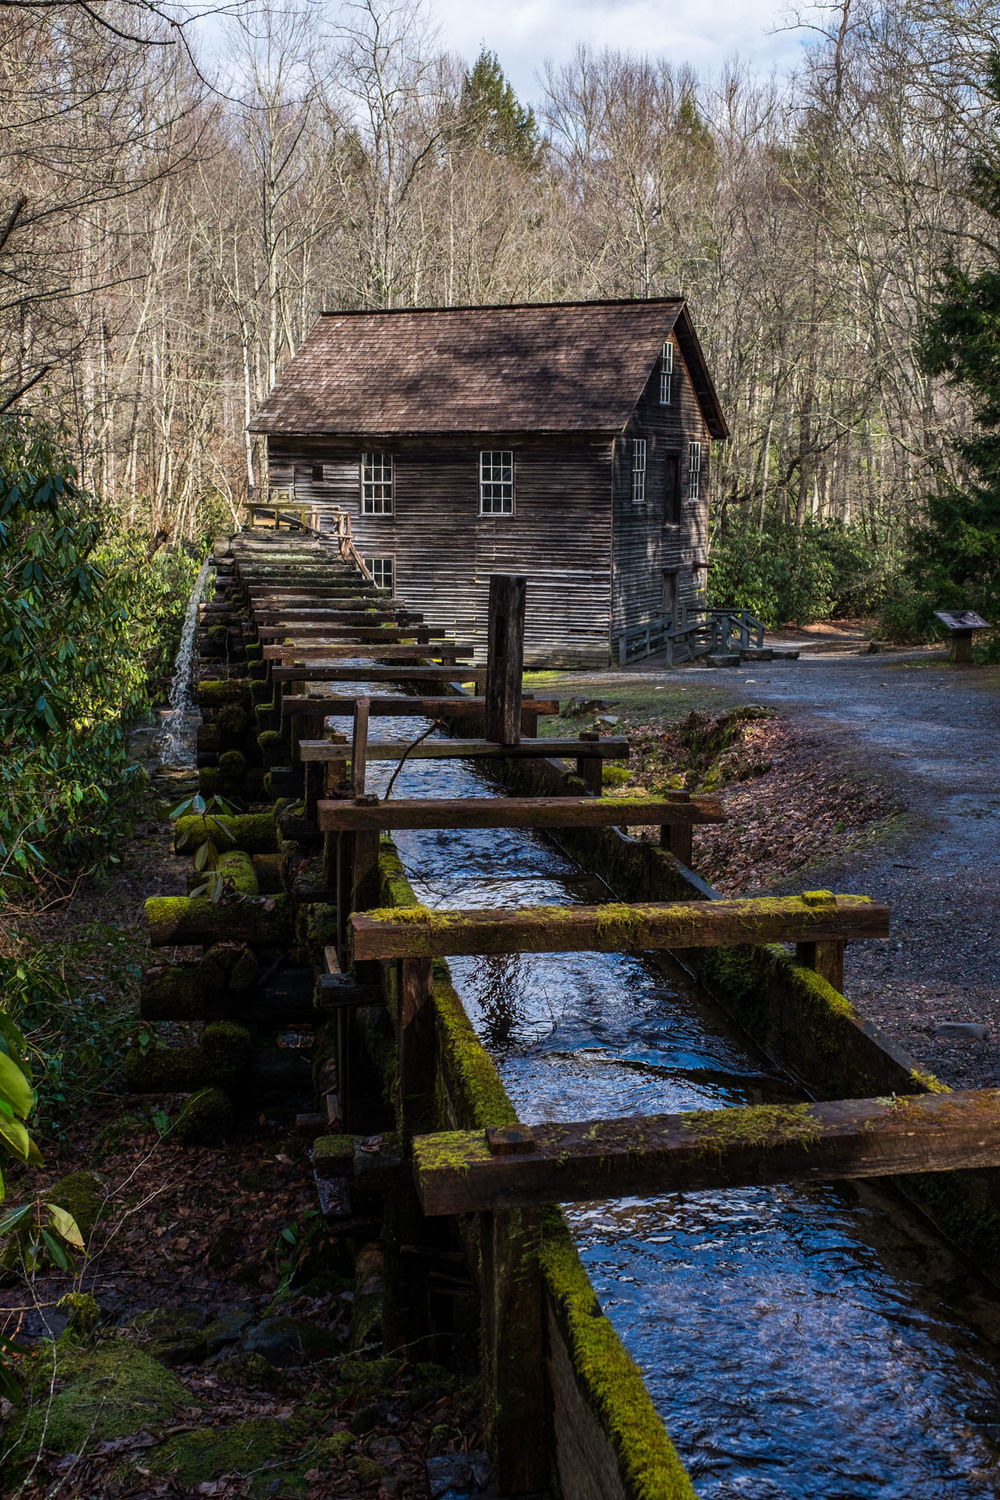 The historic Mingus Mill, and old Grist Mill located on the eastern side of the park.